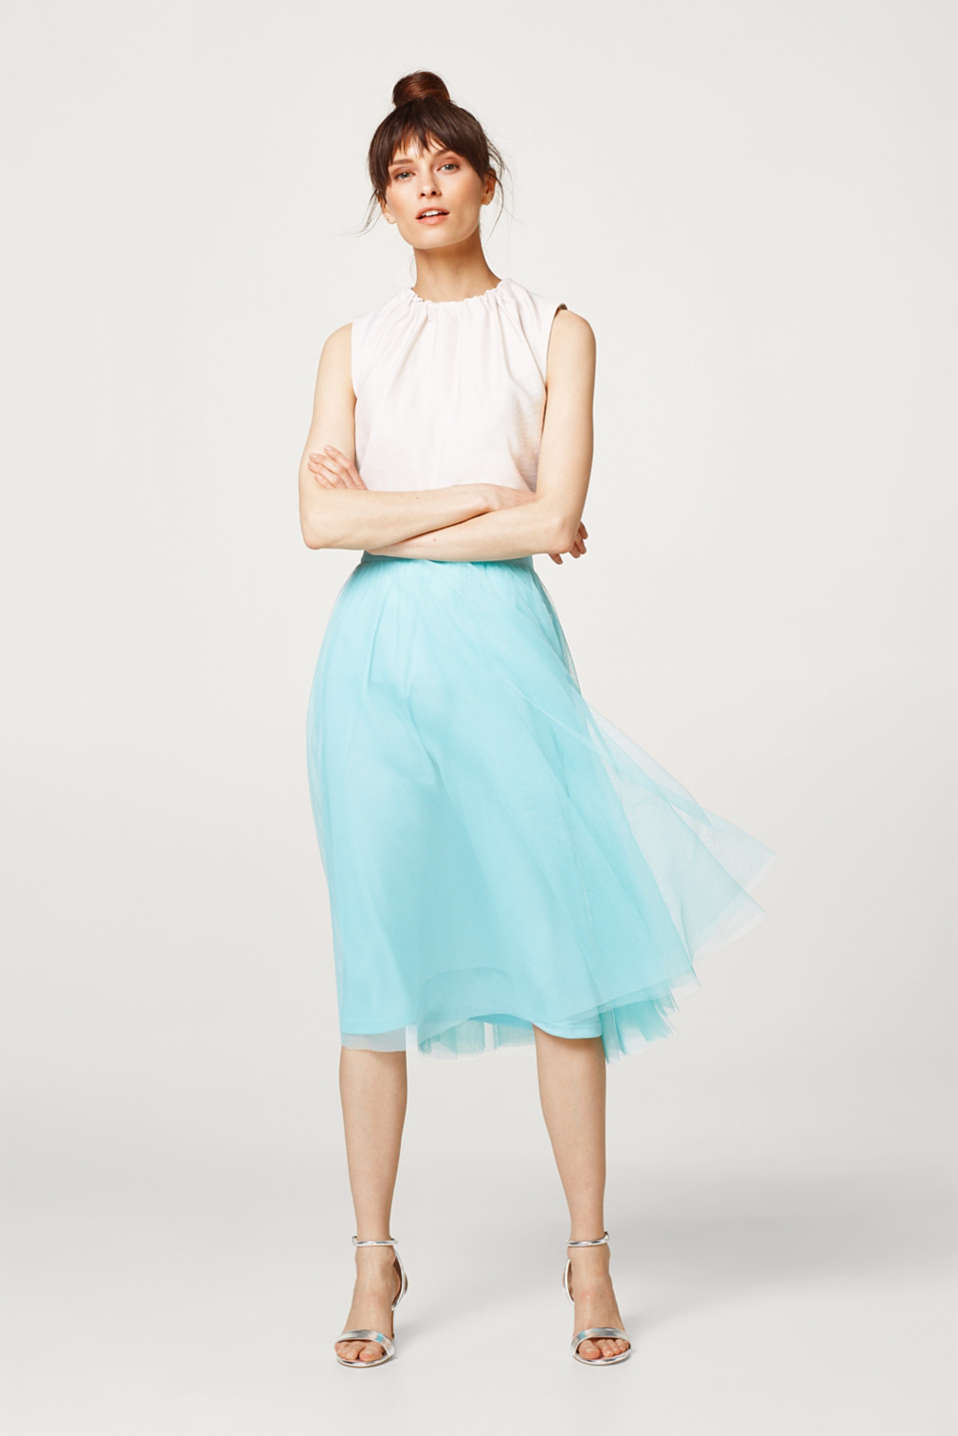 Esprit - Tulle skirt in a stylish midi length